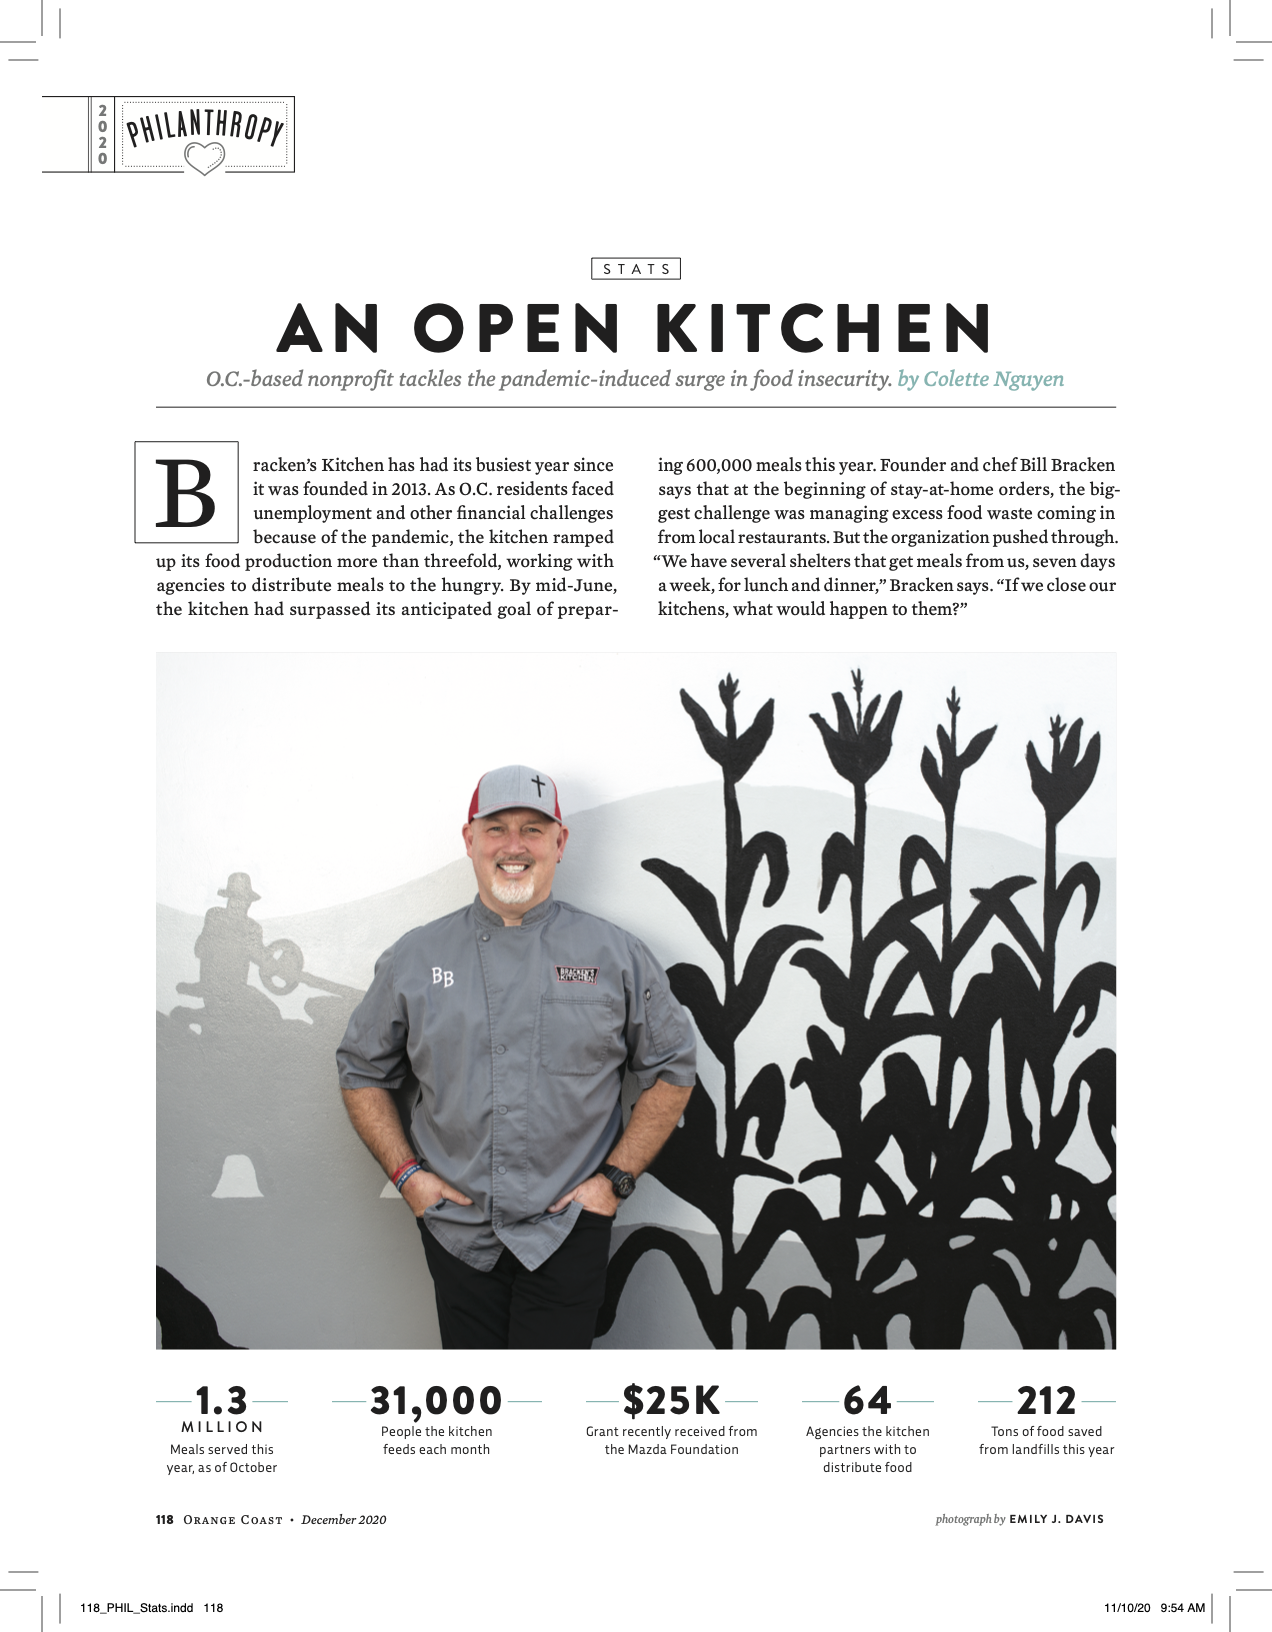 """A page from a magazine of a story called """"An Open Kitchen"""" featuring a man standing in front of a mural of a cornfield smiling"""